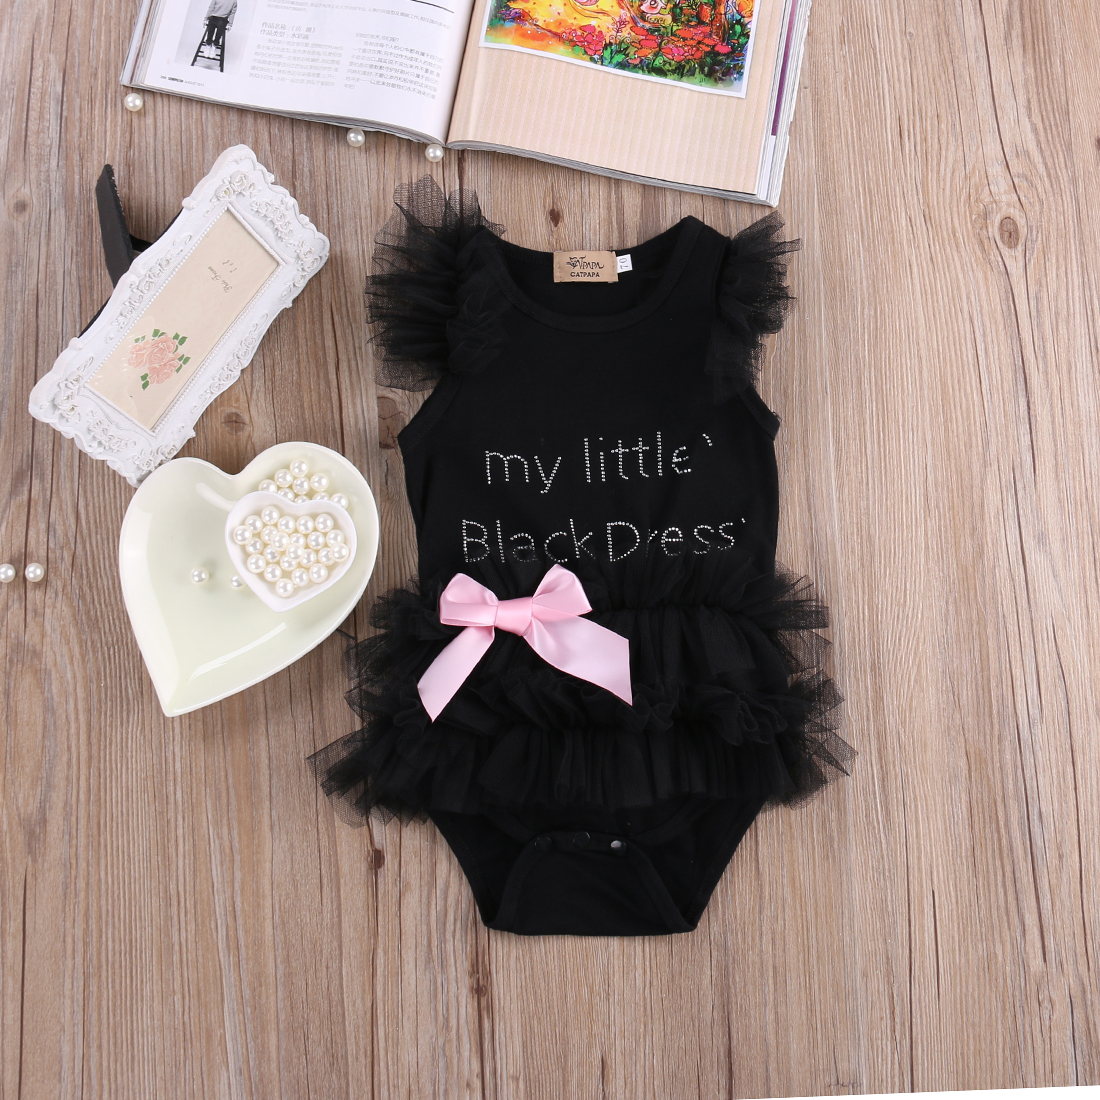 621d75cf89f7 Dresses Cheap Dresses Kids Baby Girls Embroidered My Little.We offer the  best wholesale price, quality guarantee, professional e-business service  and fast ...